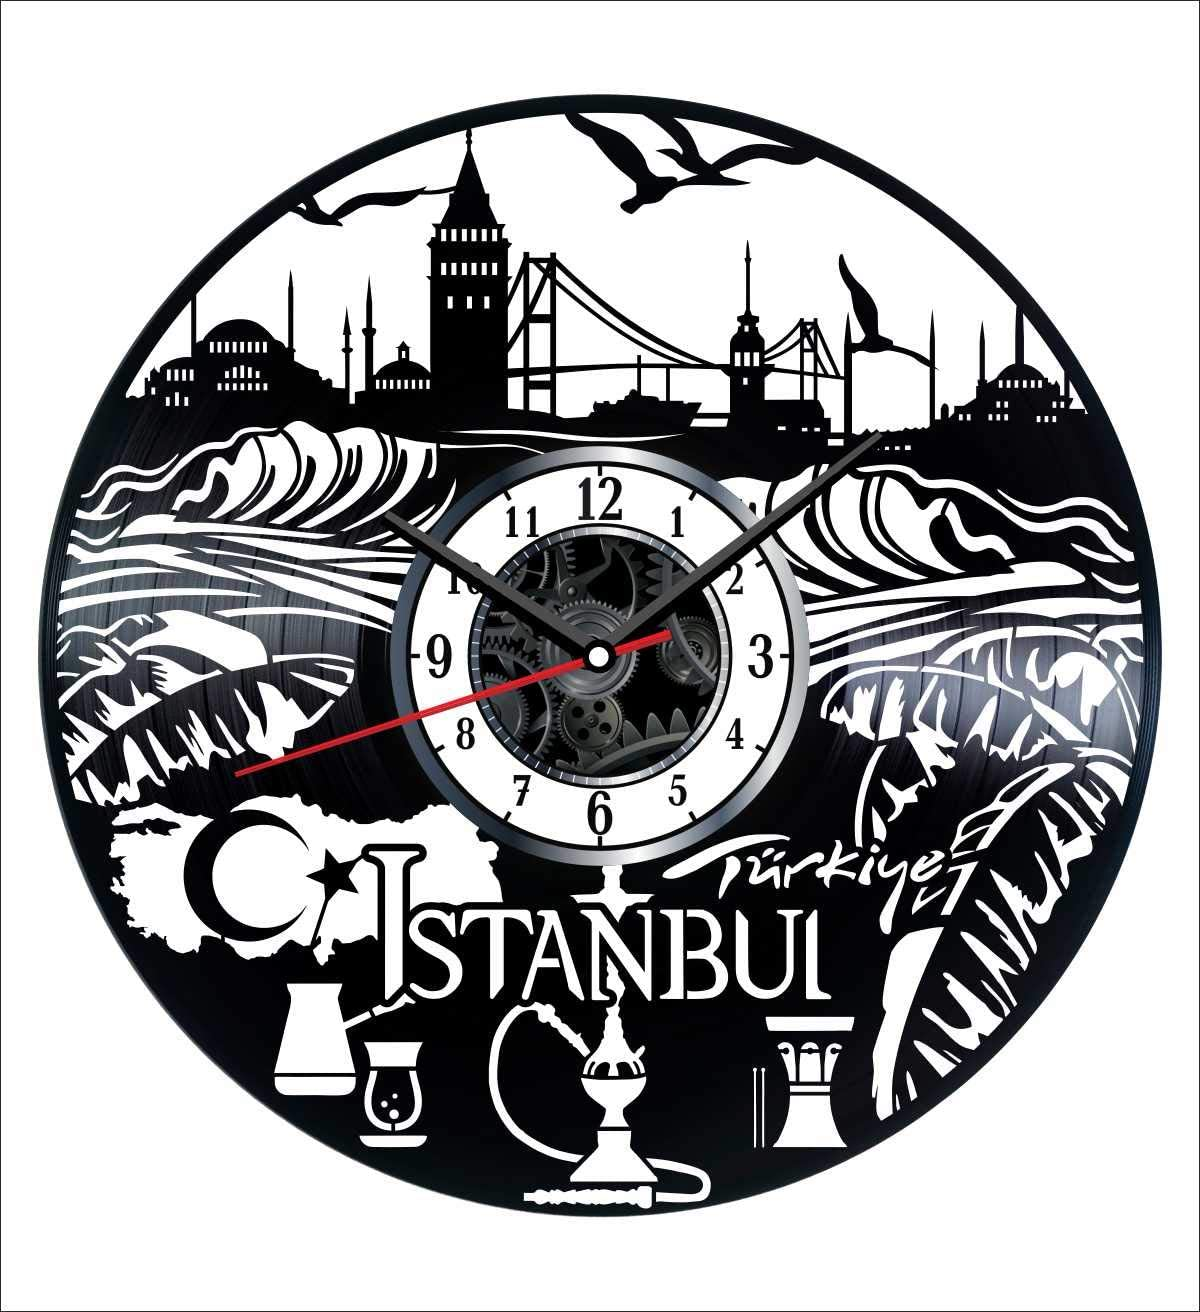 Turkey Istanbul Vinyl Wall Clock Vintage Record - Get Unique Home and Office Decor Bedroom Kitchen Kids Living Room - Gifts for Men Women Kids Father Mother - Wall Art Design - Free Personalization